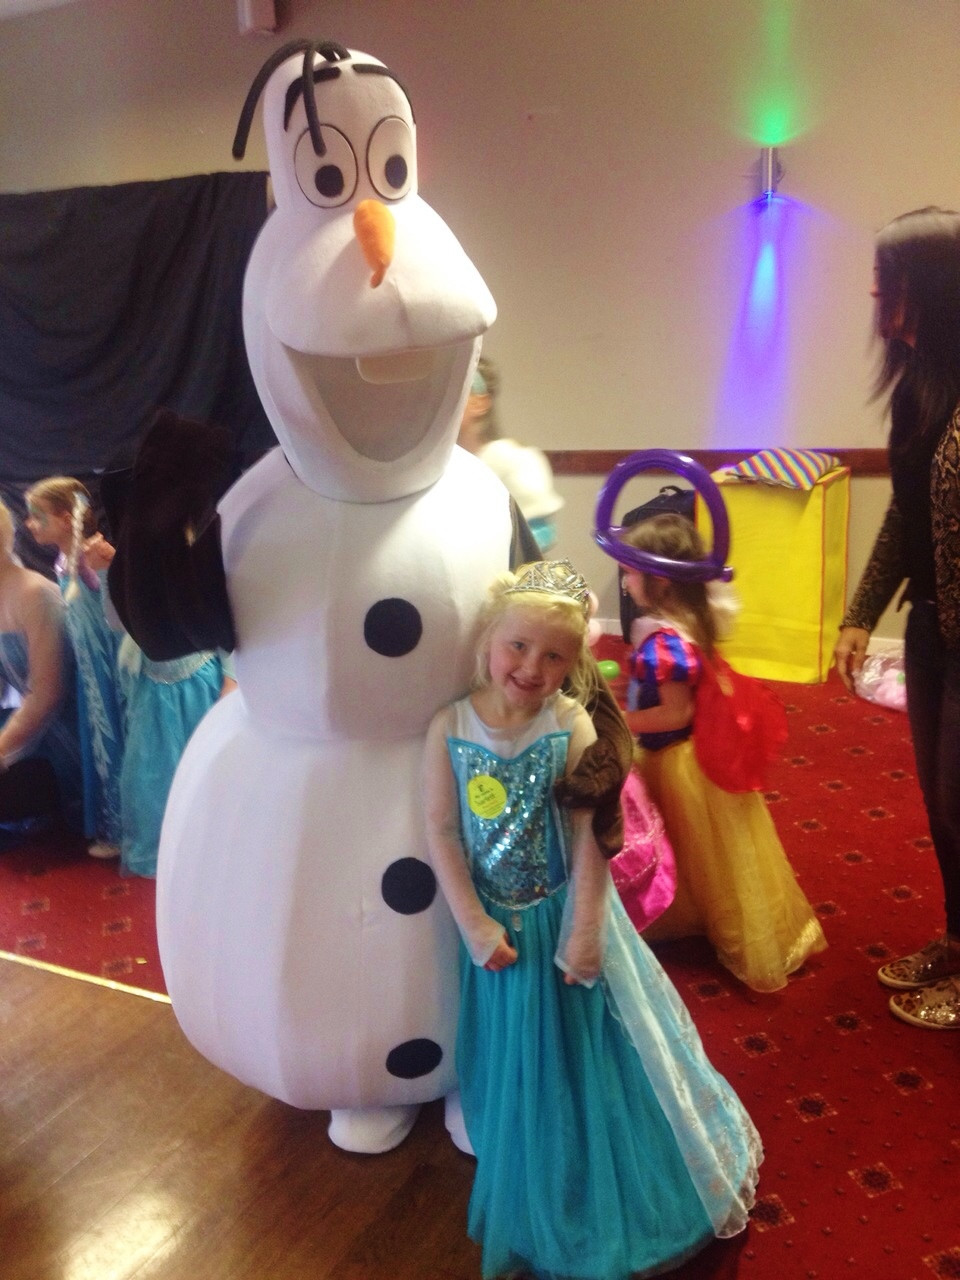 Christmas Frozen meet and greet characters